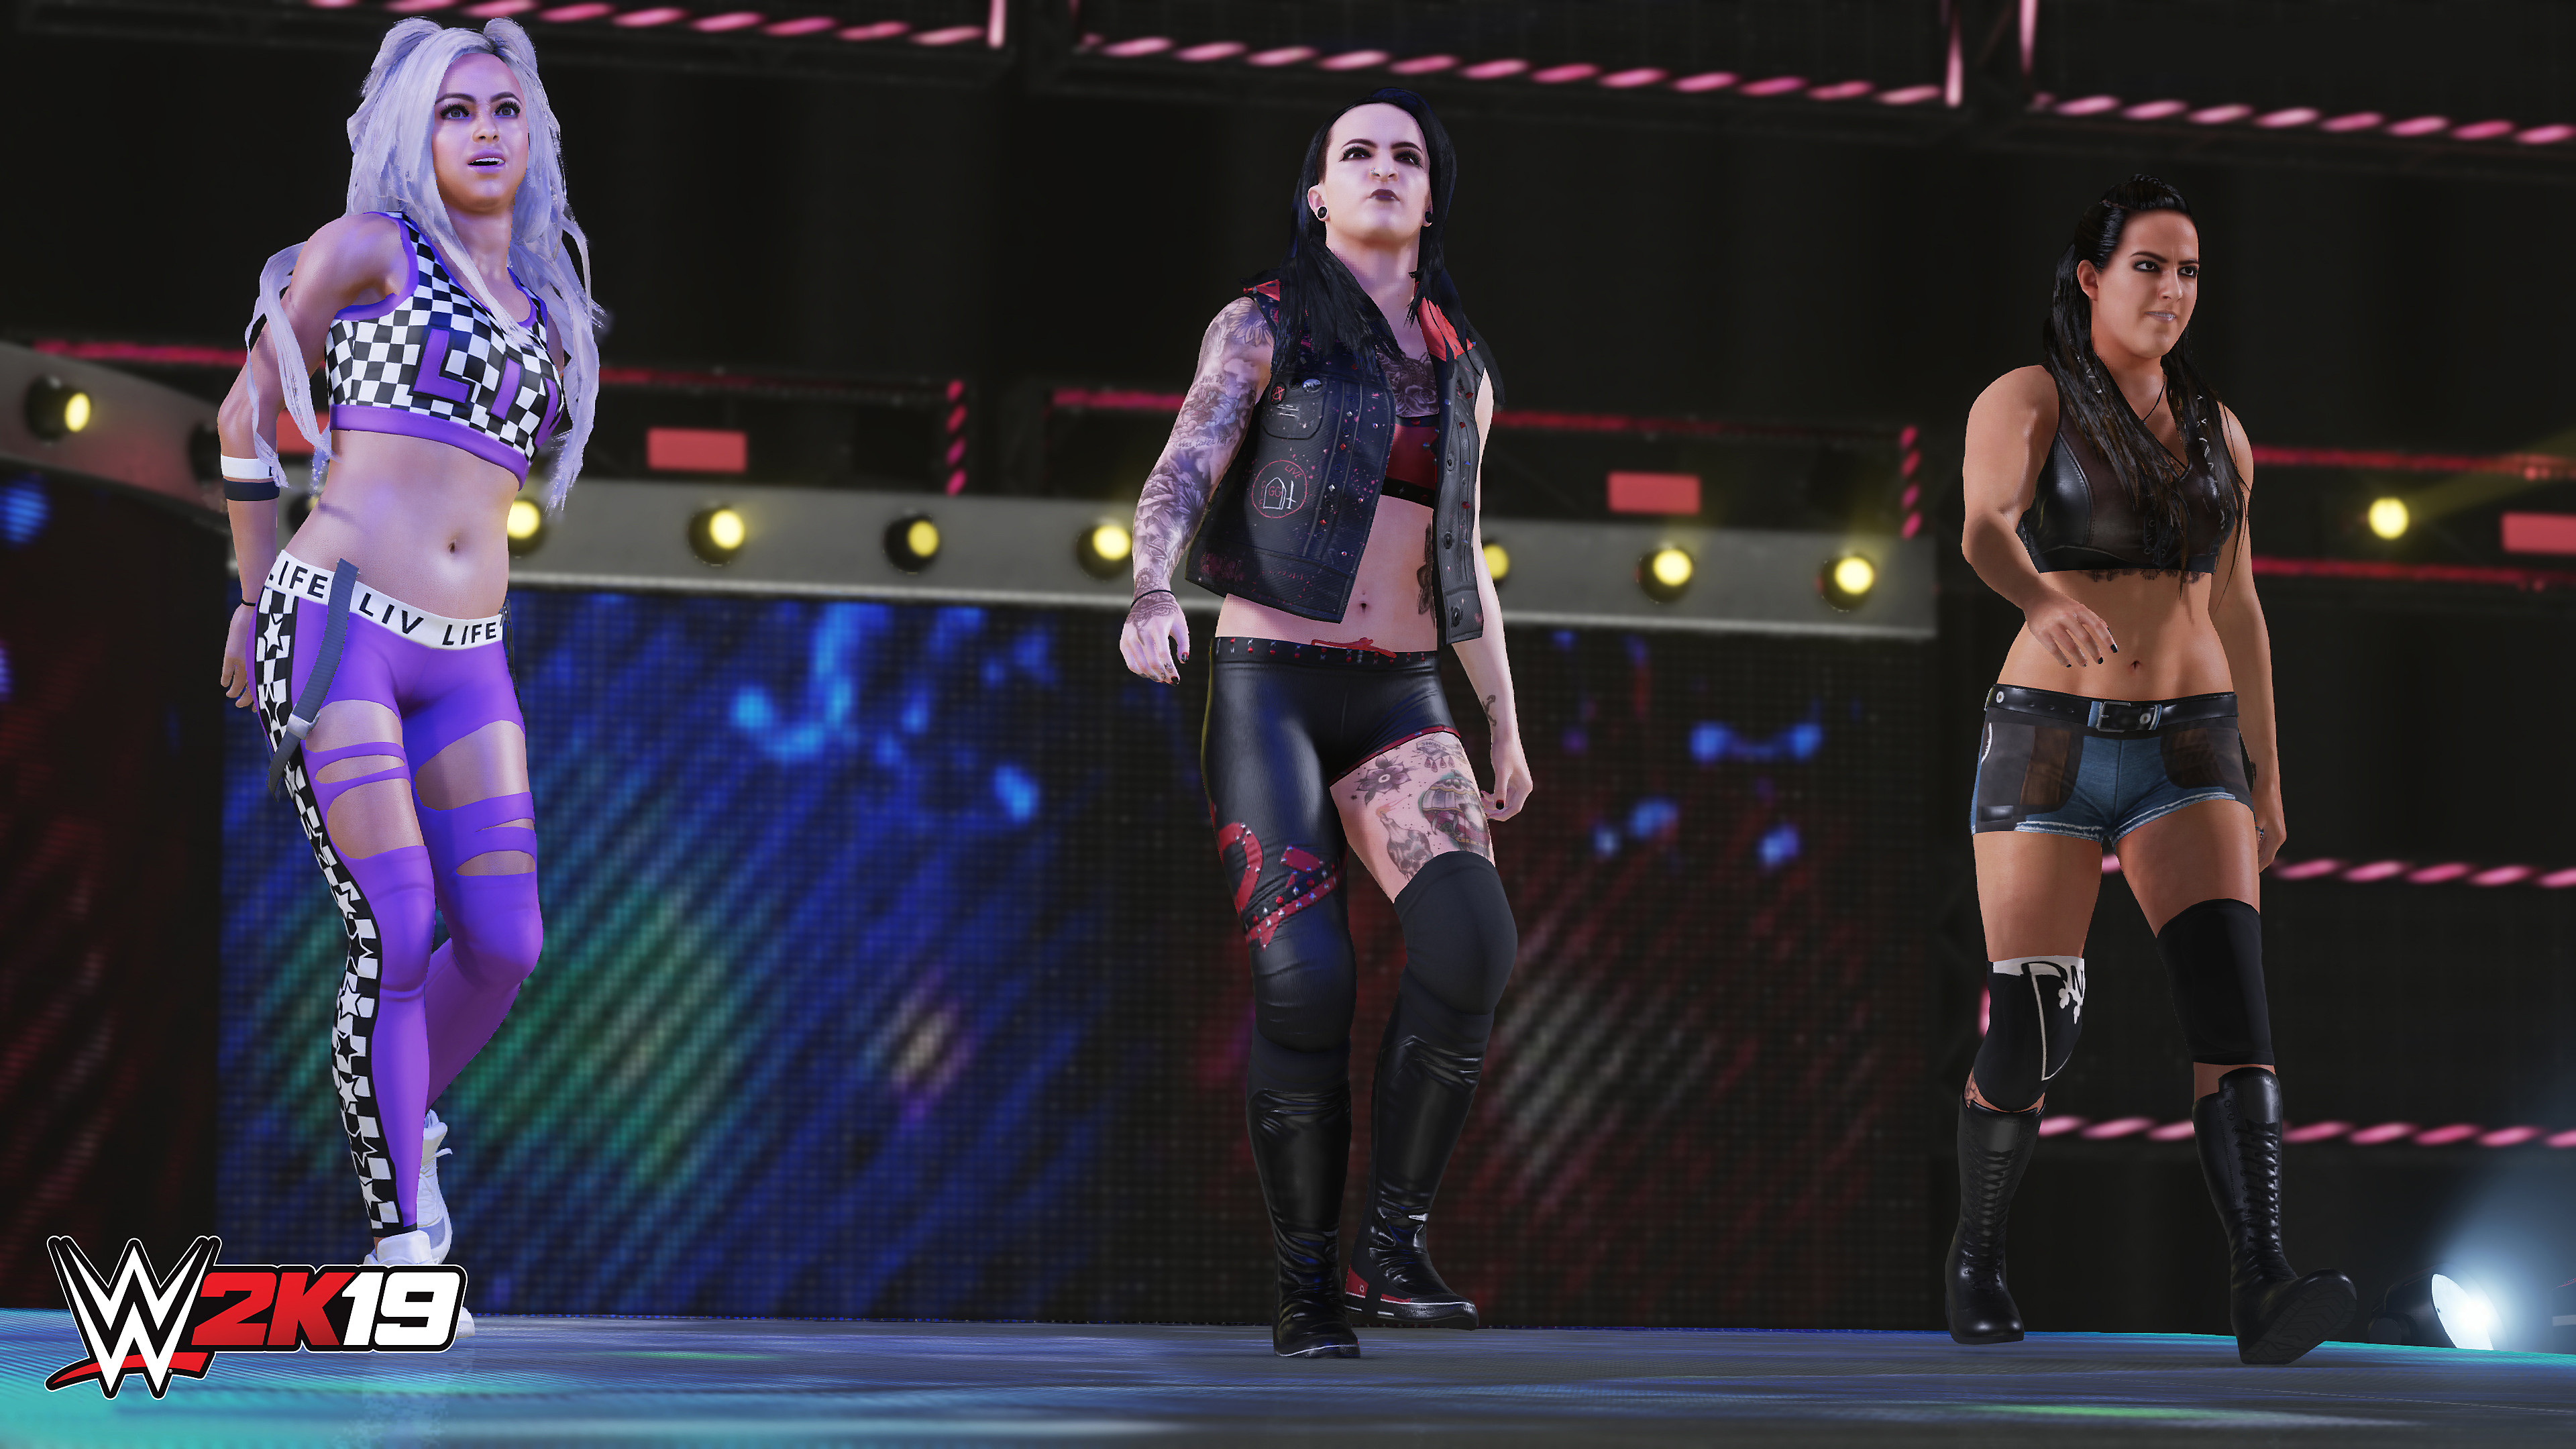 WWE 2K19 - Game Features - Stunning Visuals